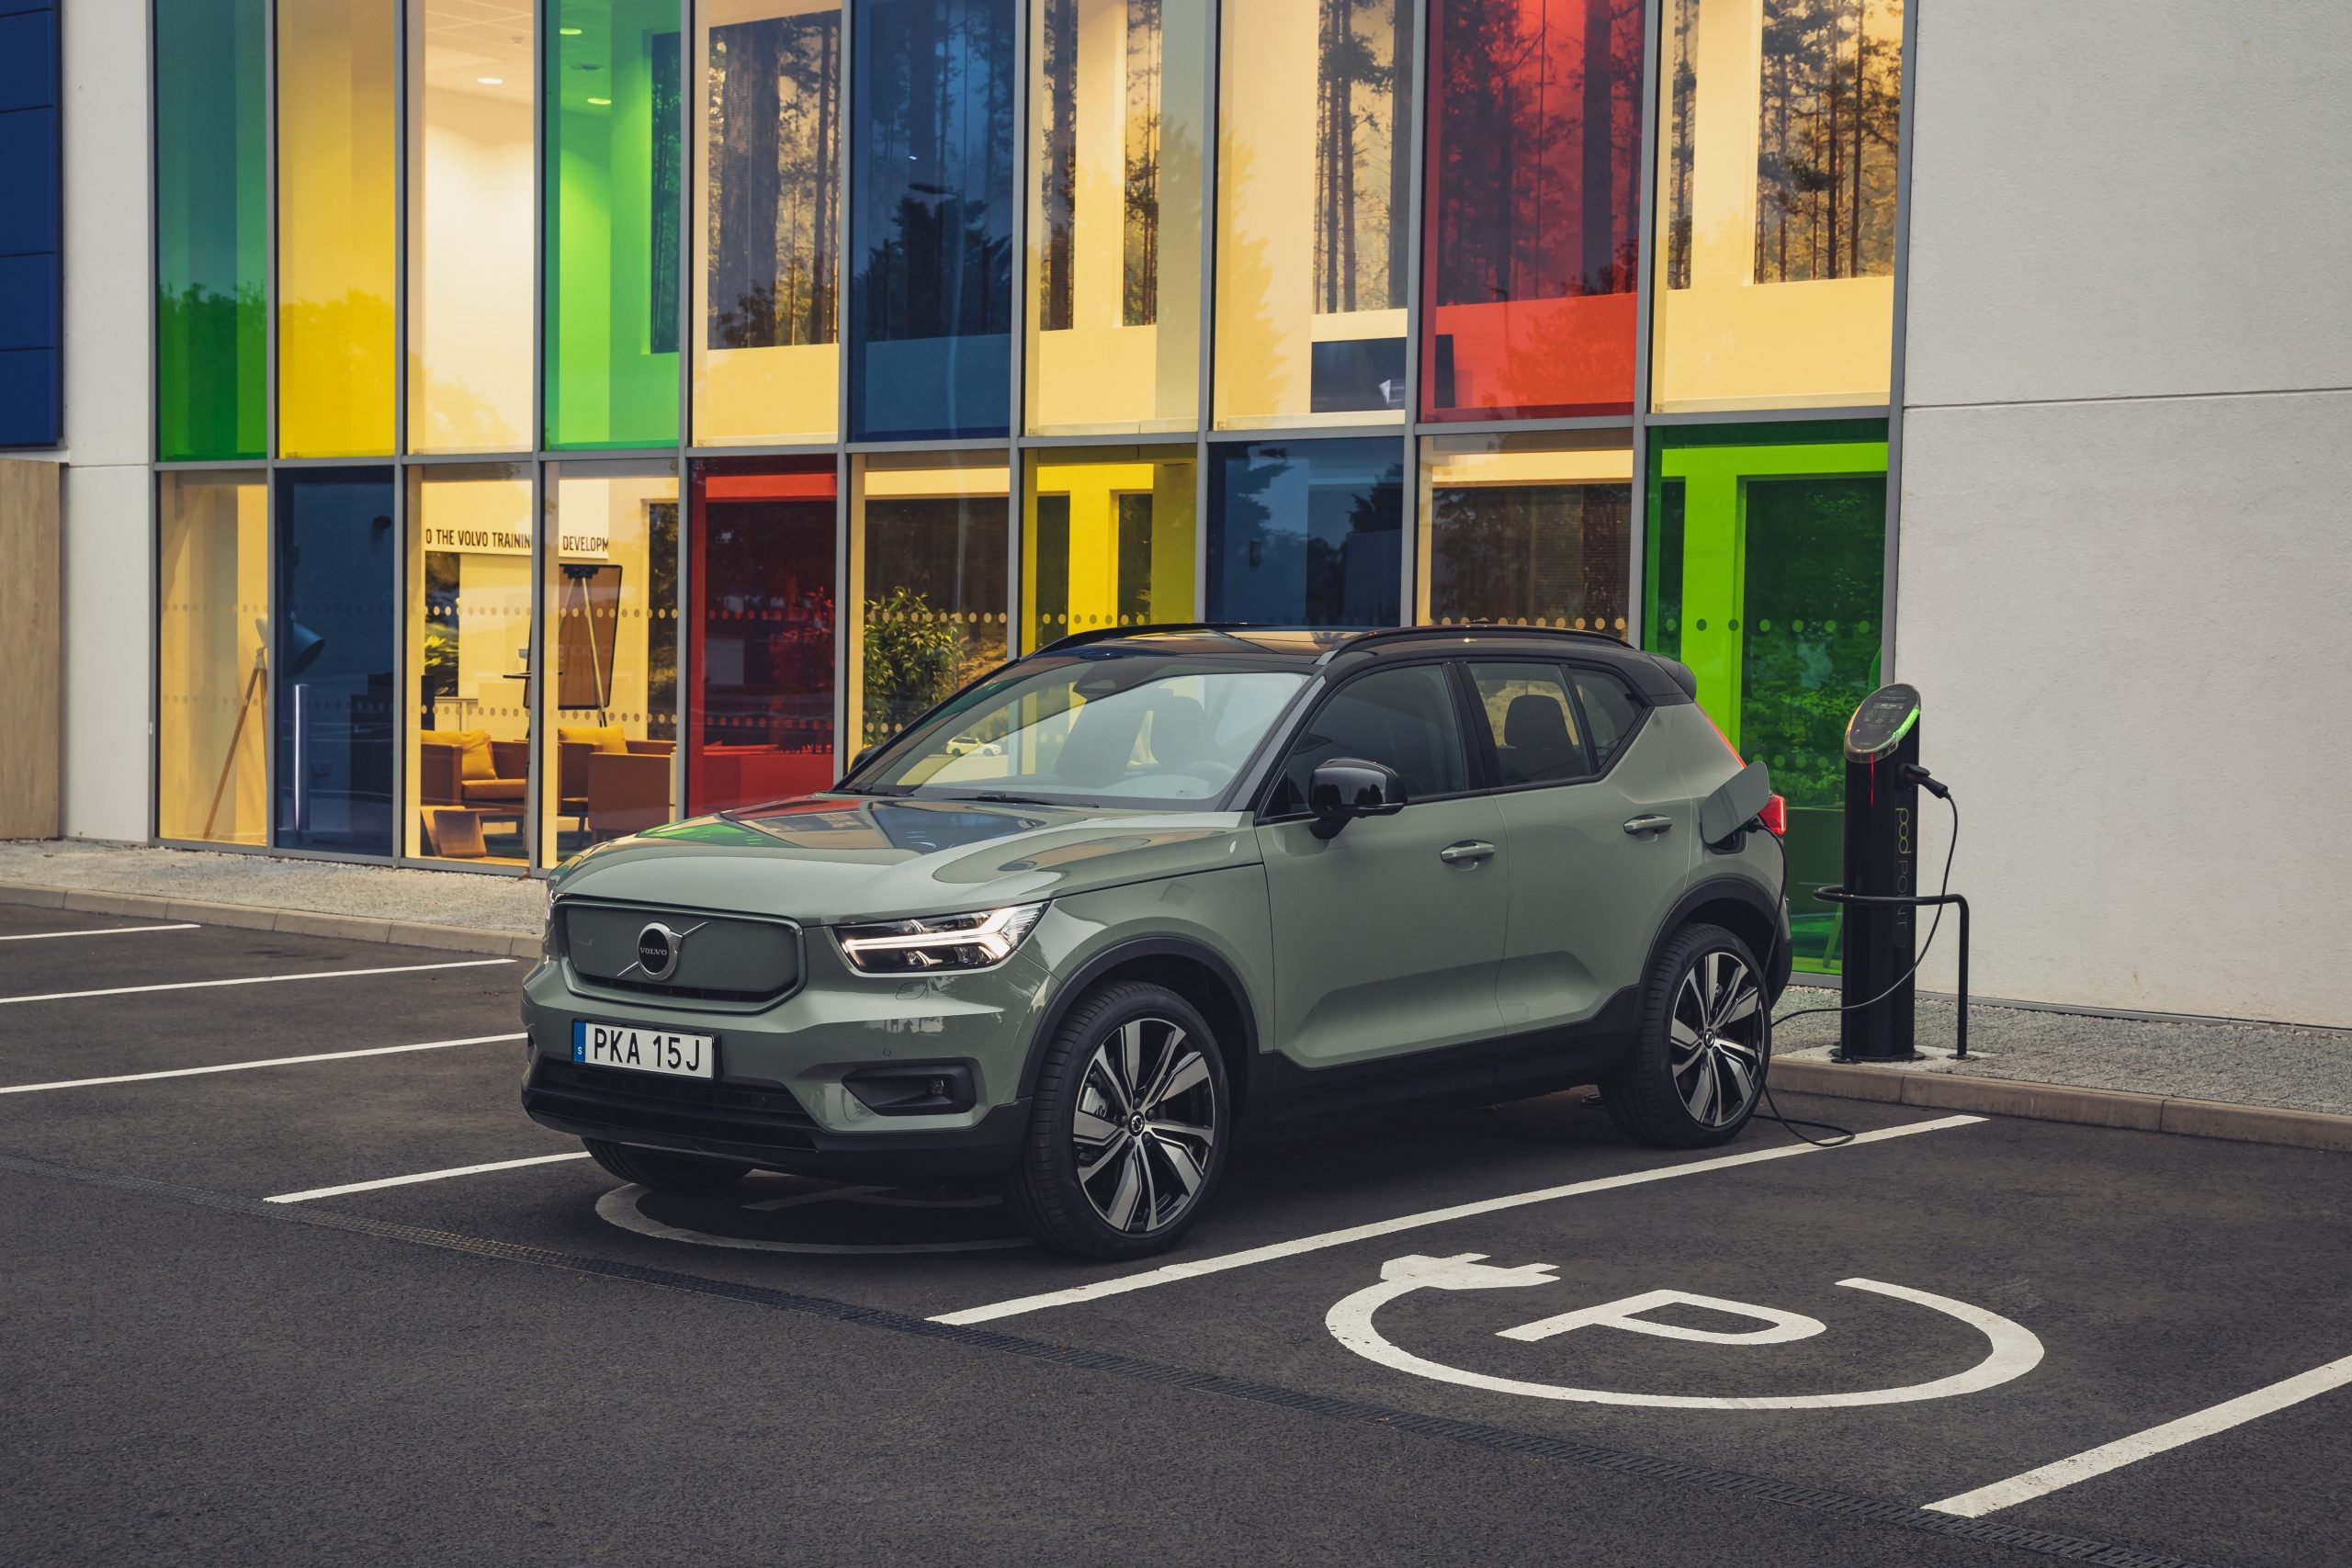 Volvo slates 2030 as its year to go fully electric